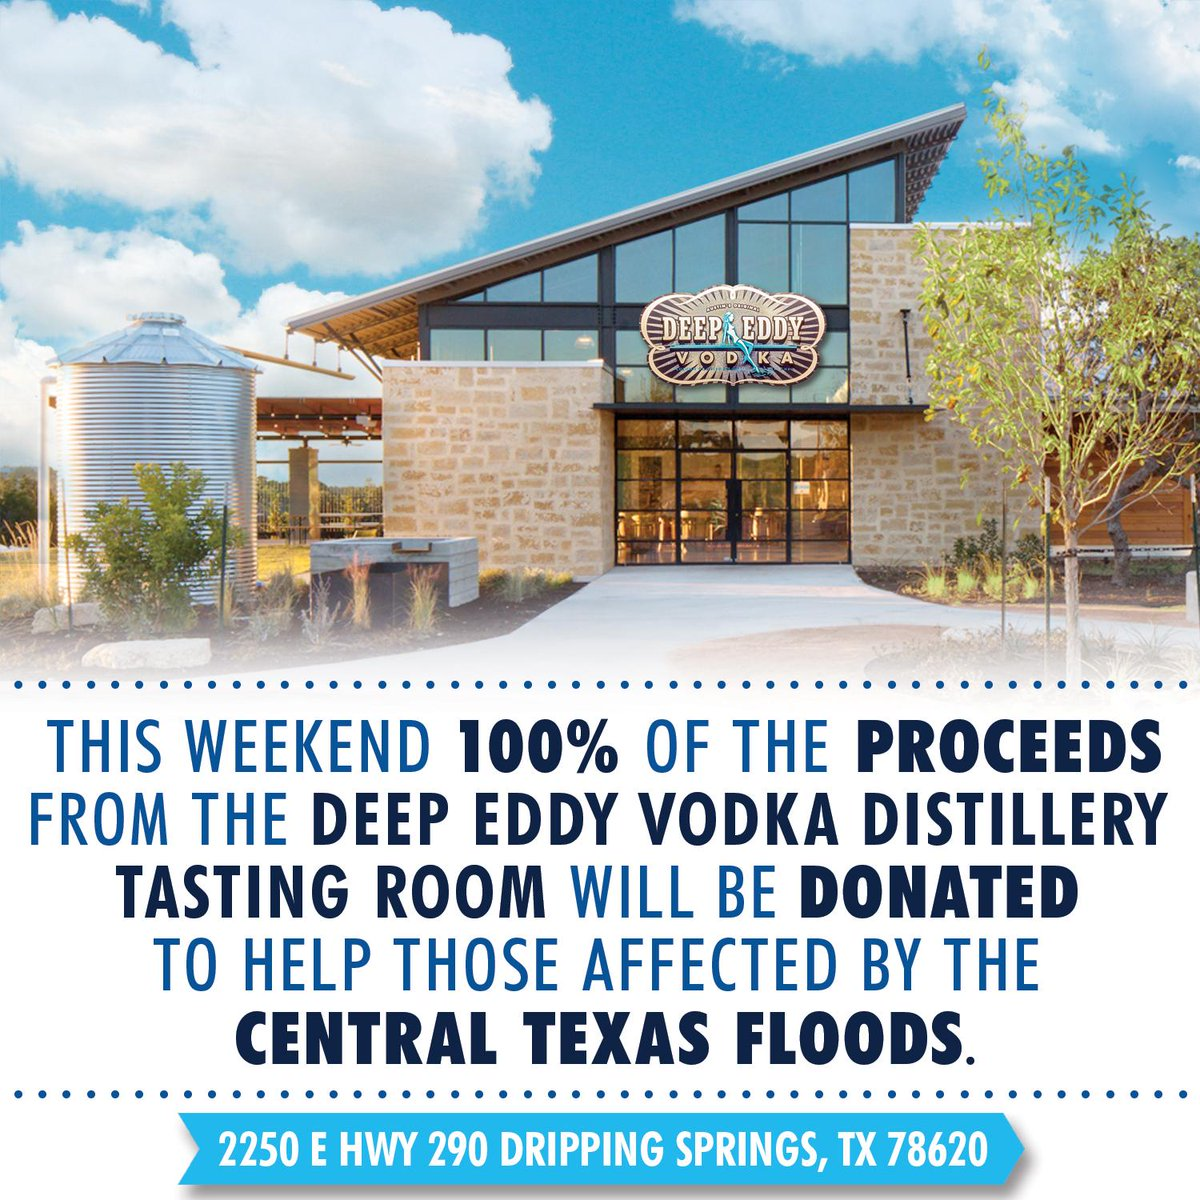 We want to help those in Texas affected by this week's floods. Join us at our distillery & support our community! http://t.co/N57lA9p9AI